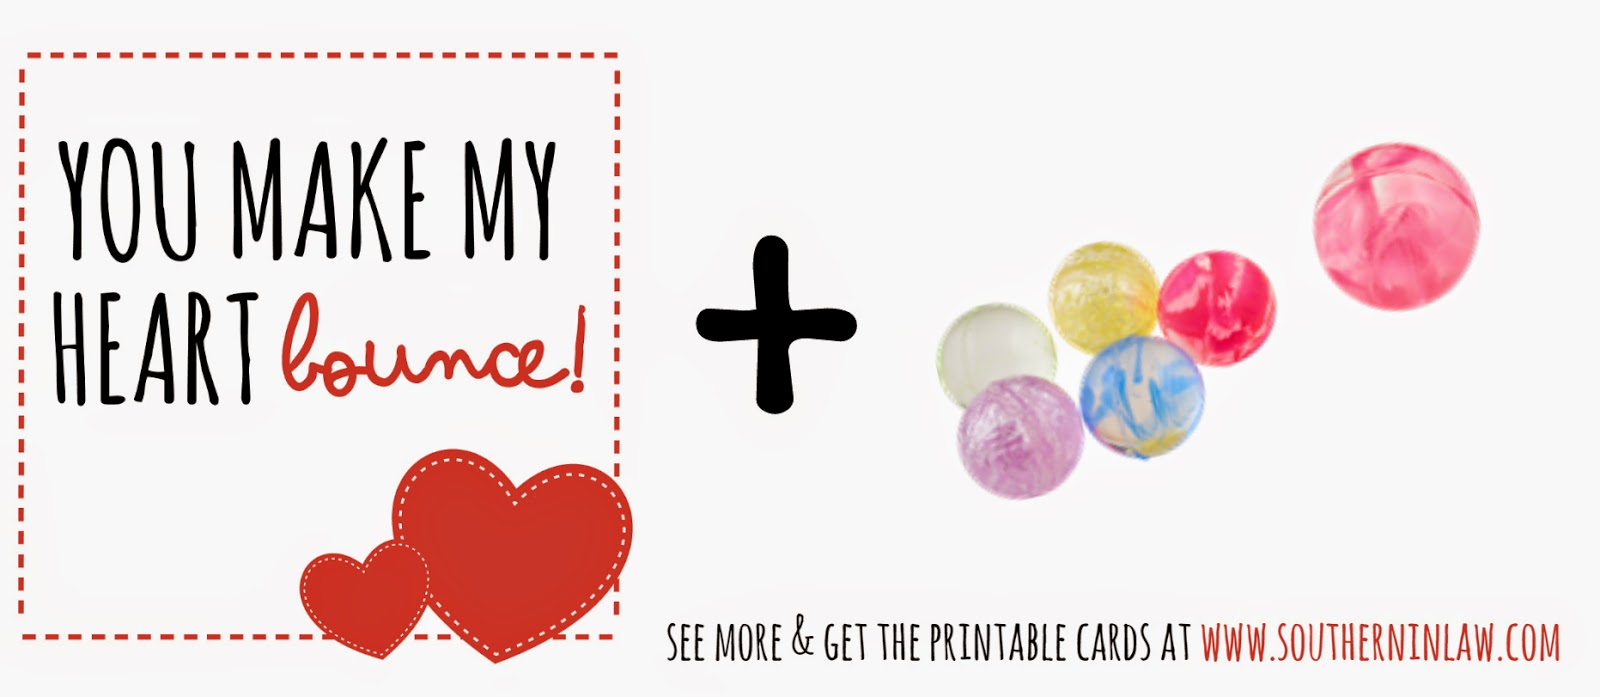 You make my heart bounce - Bouncy ball Valentines Gift Idea - Punny Valentines Gift Ideas Free Printable Valentines Cards